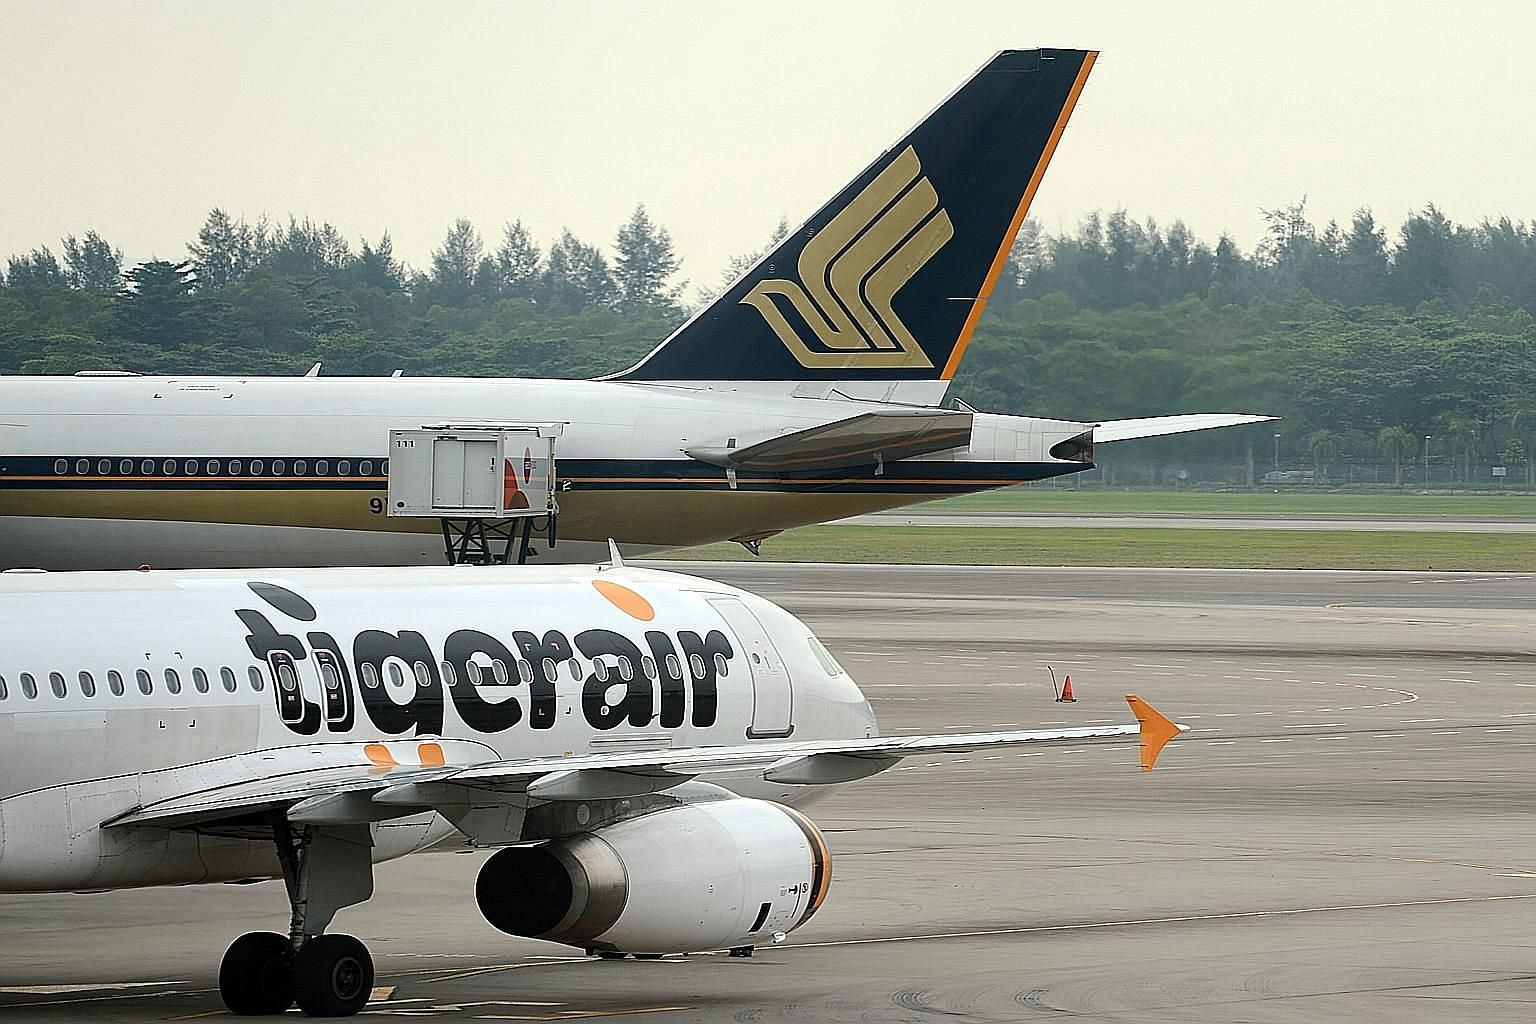 SIA lodged the takeover offer for Tigerair on Nov 6, with the aim of delisting the budget carrier and taking it private.